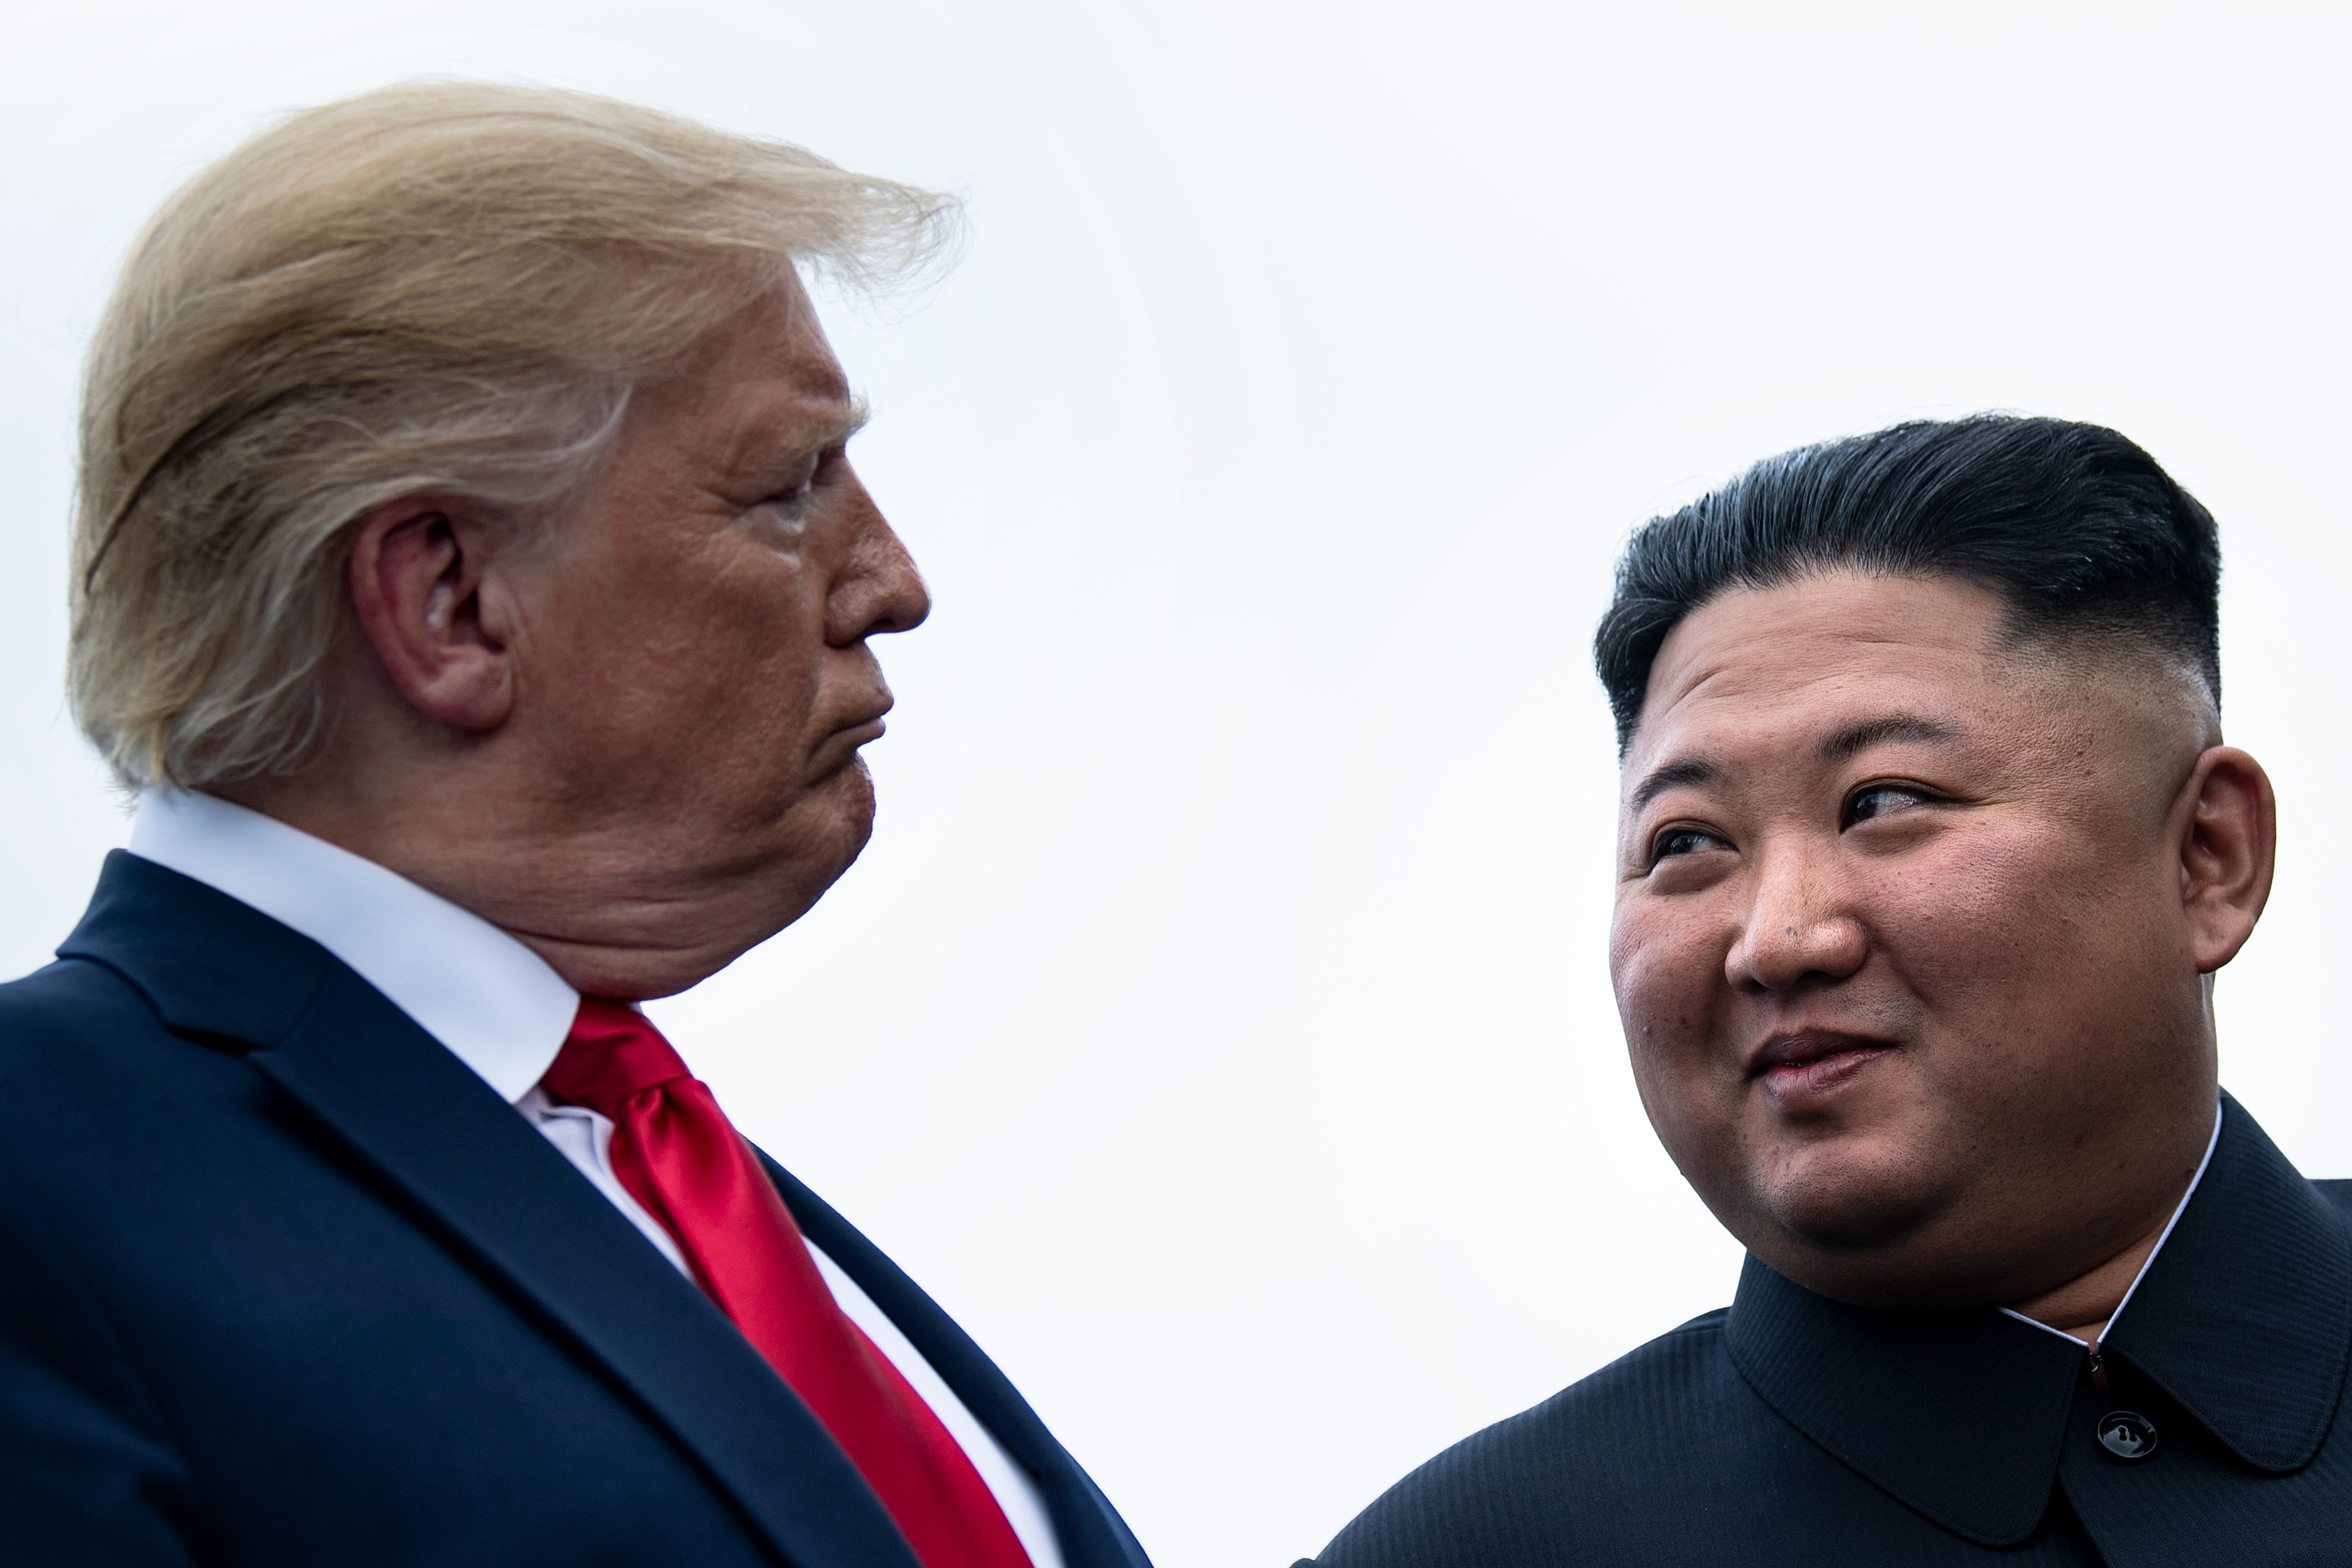 President Donald Trump and North Korean leader Kim Jong Un talk before a meeting in the Demilitarized Zone on June 30, 2019, in Panmunjom, Korea.